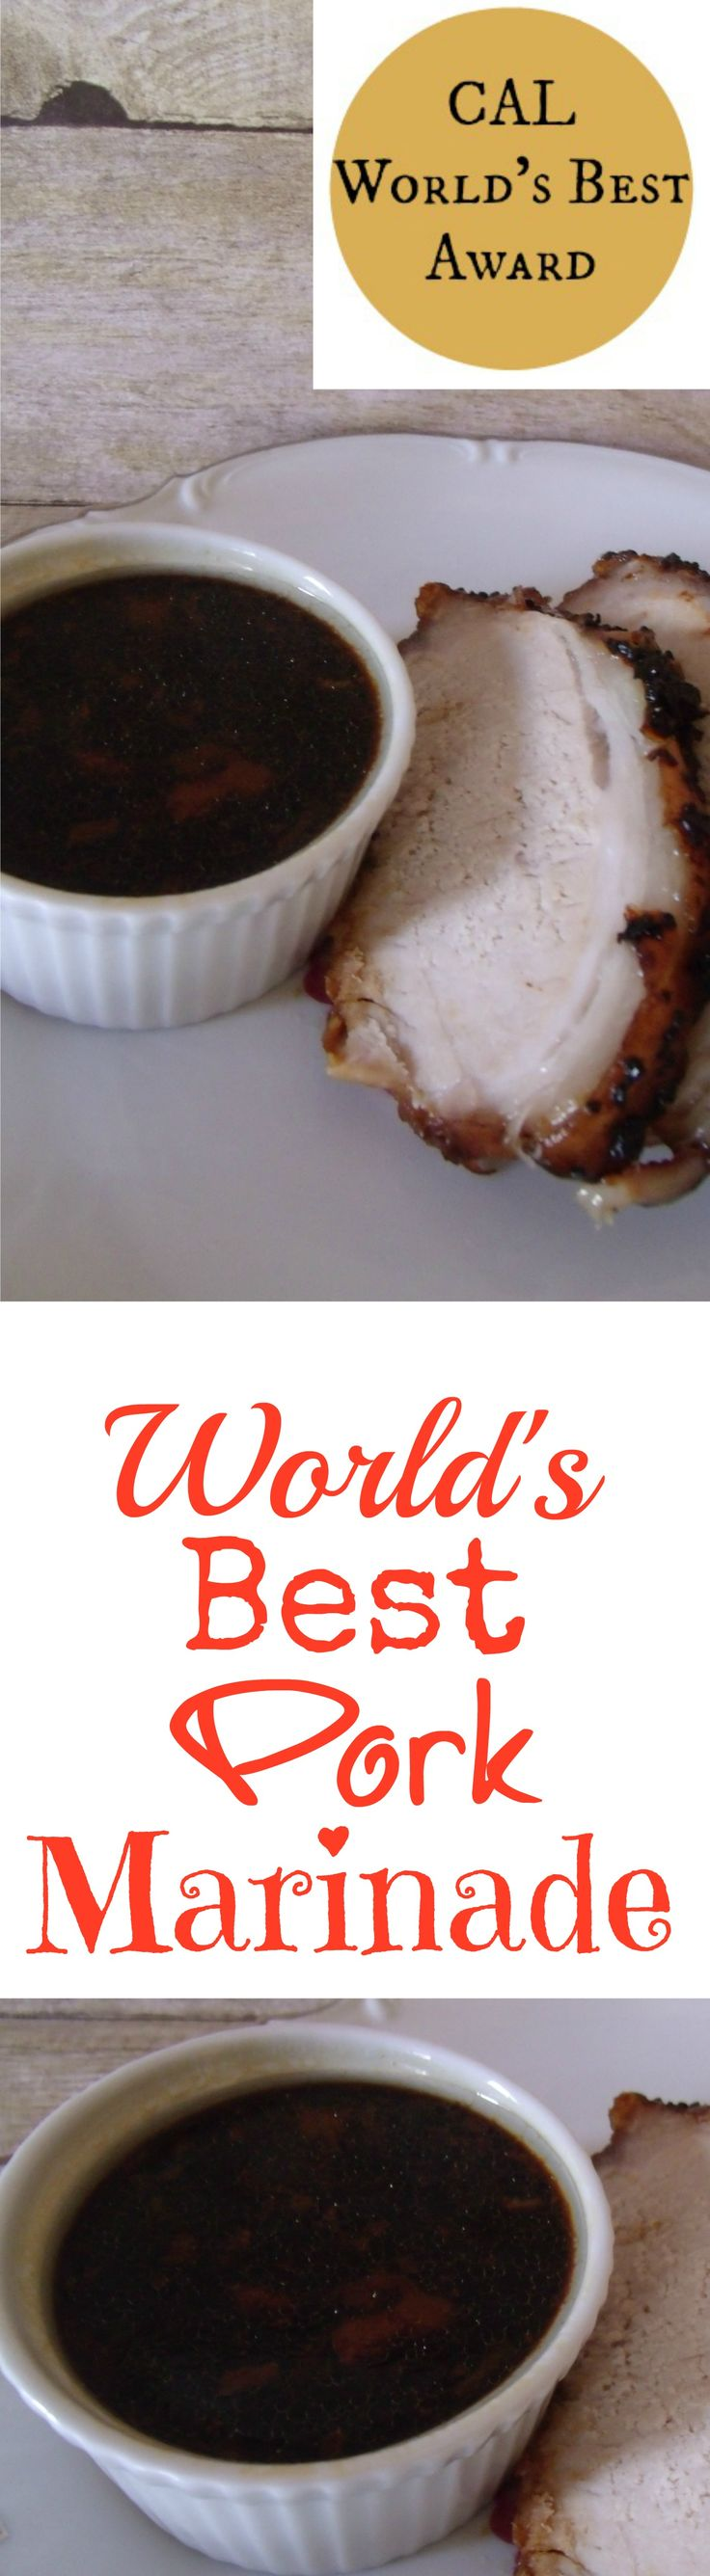 World's Best Pork Marinade...This recipe is a keeper.  Pin it for later!